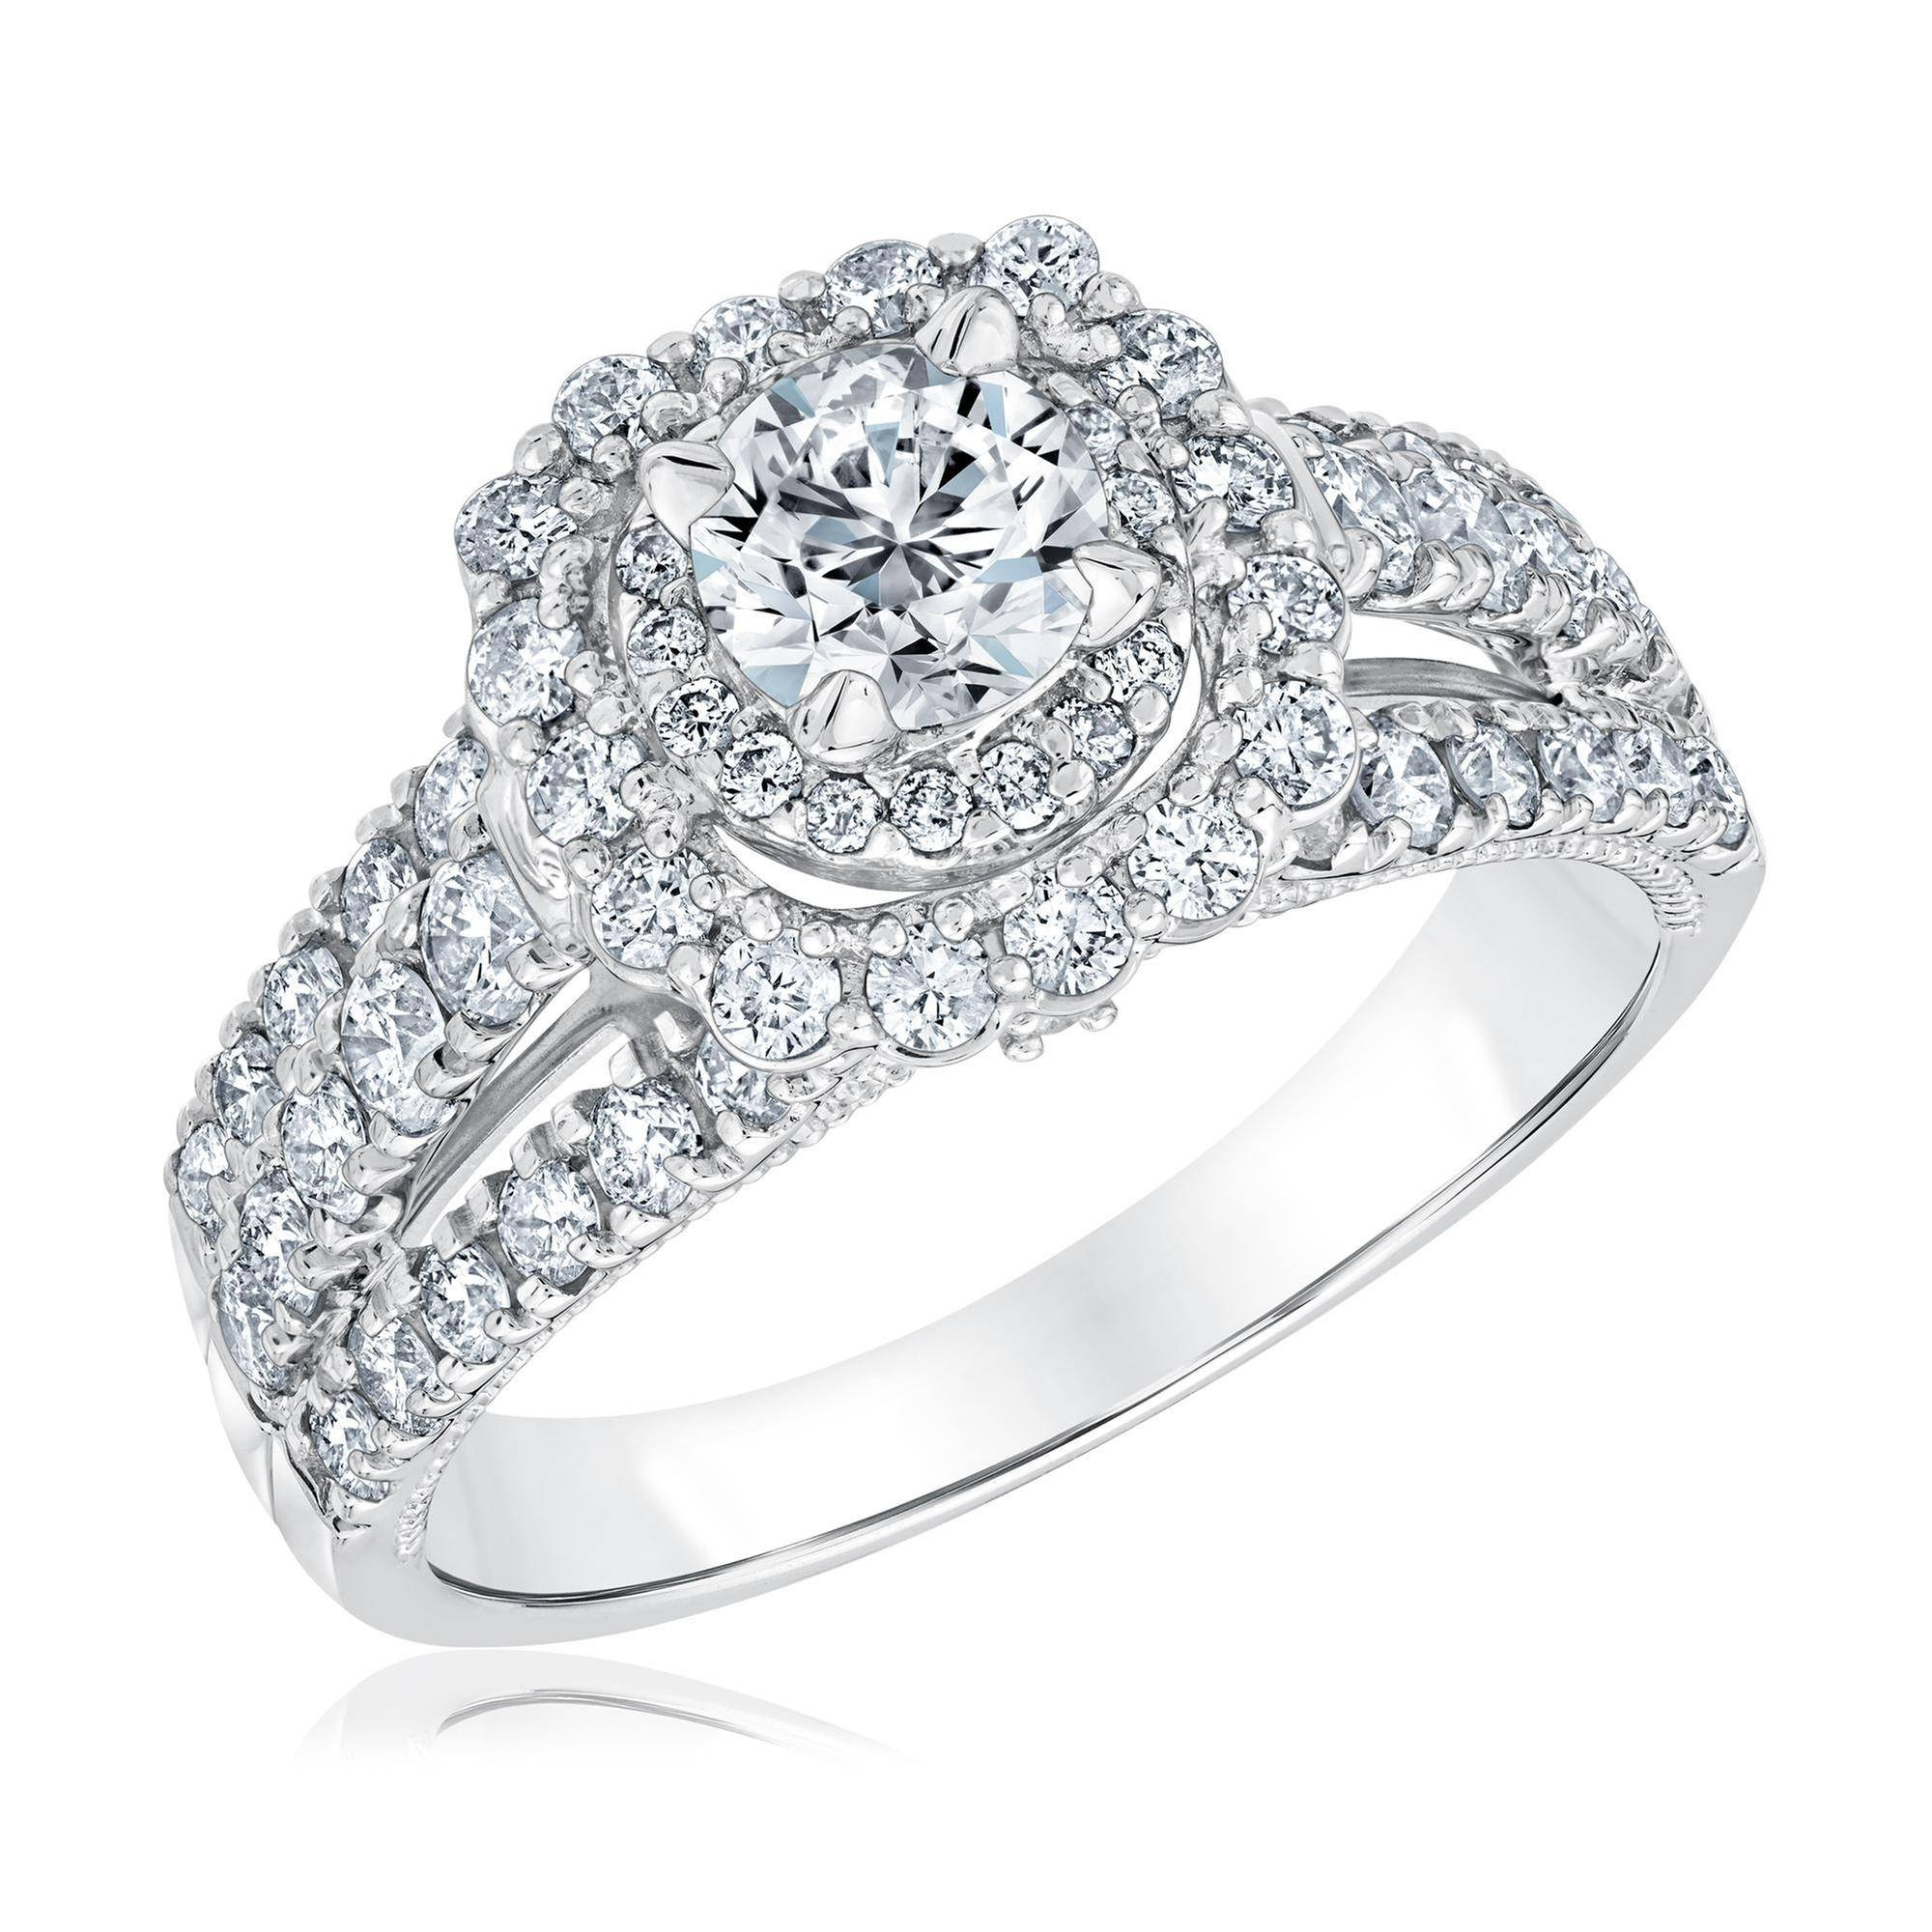 Rings Page 1 | Reeds Jewelers Throughout Newest Ladies Anniversary Rings (View 5 of 25)